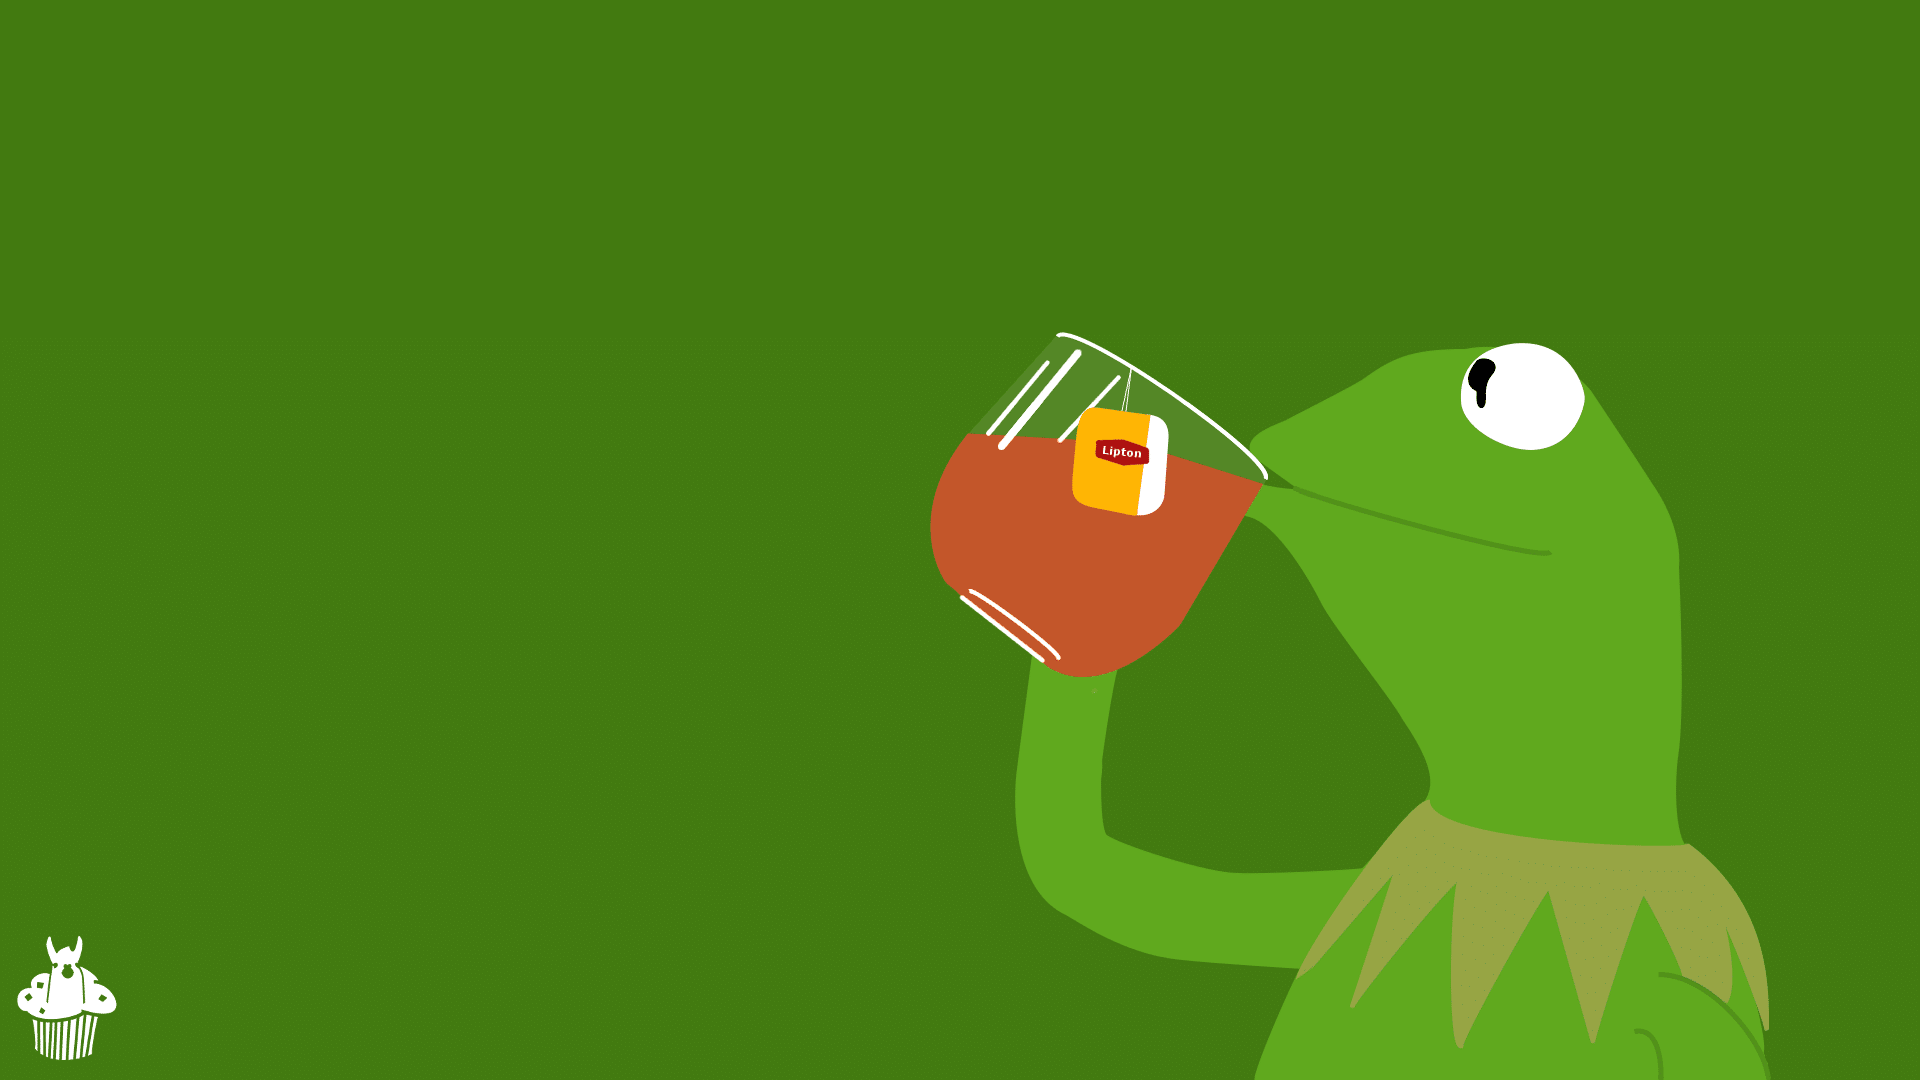 kermit de frog here wallpaper by llamamoofin d96slva